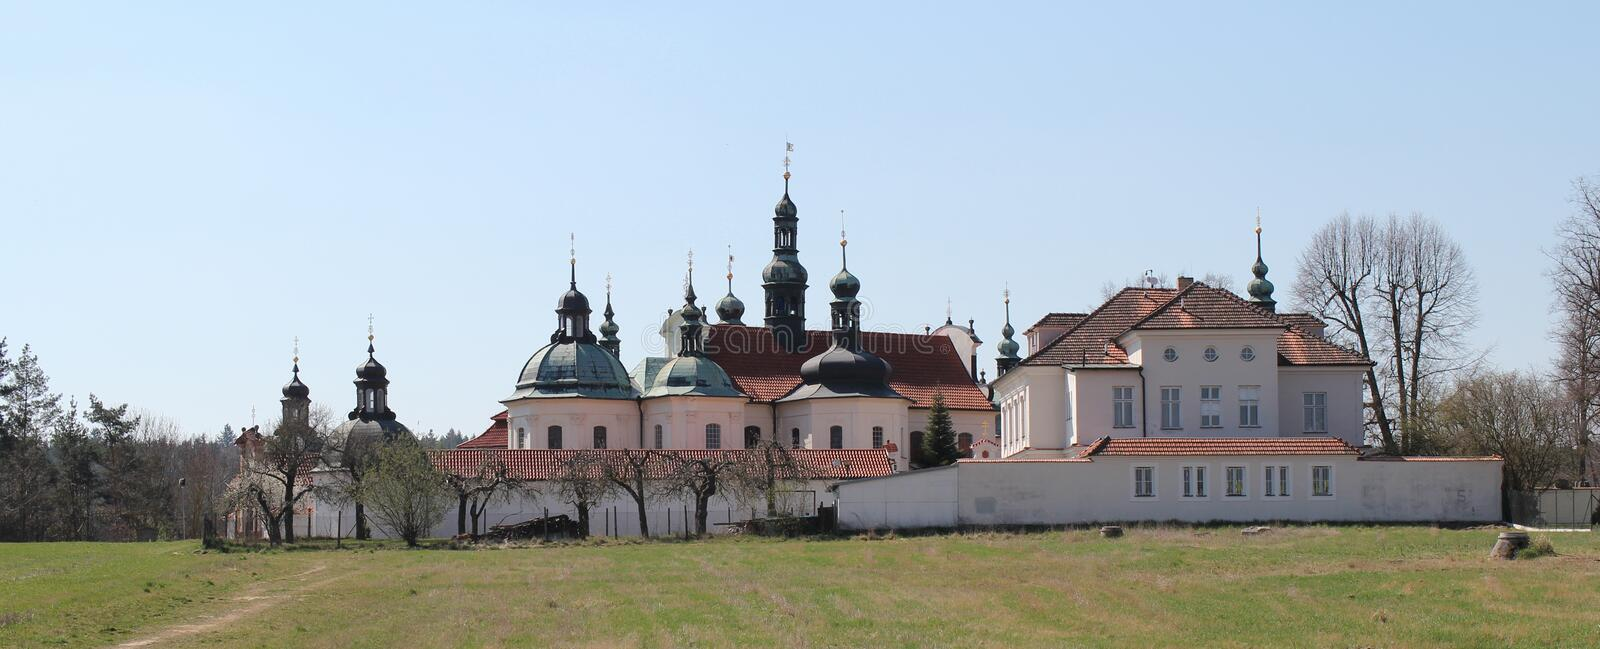 Klokoty in Tabor, Czech republic, place of pilgrimage.  royalty free stock photography